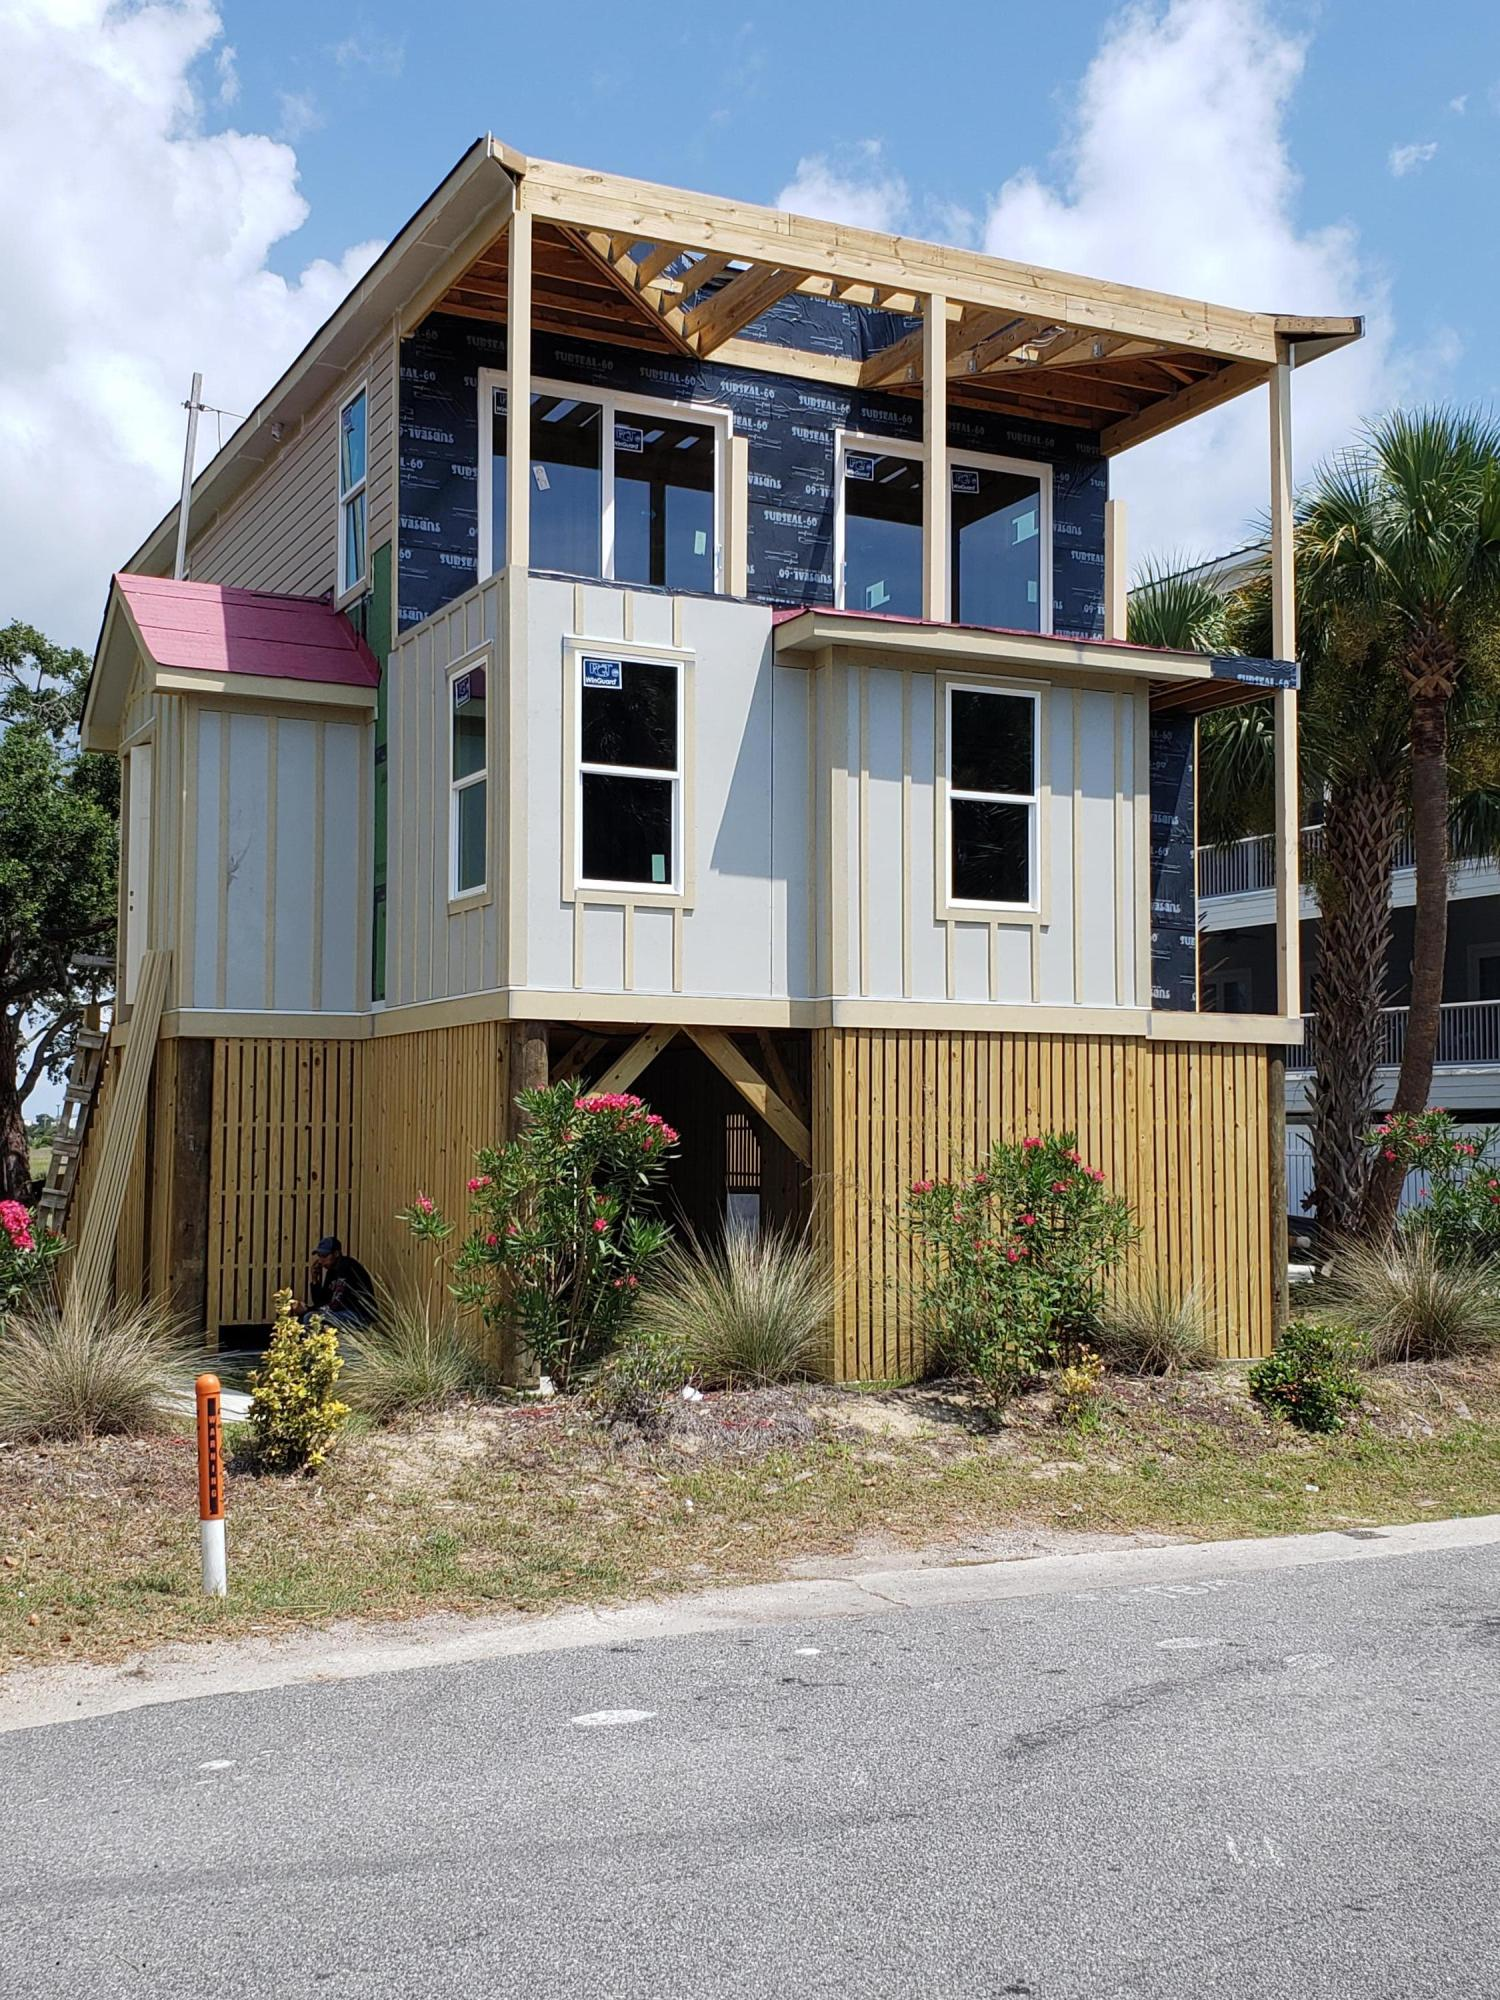 Mariners Cay Homes For Sale - 10 Mariners Cay, Folly Beach, SC - 17